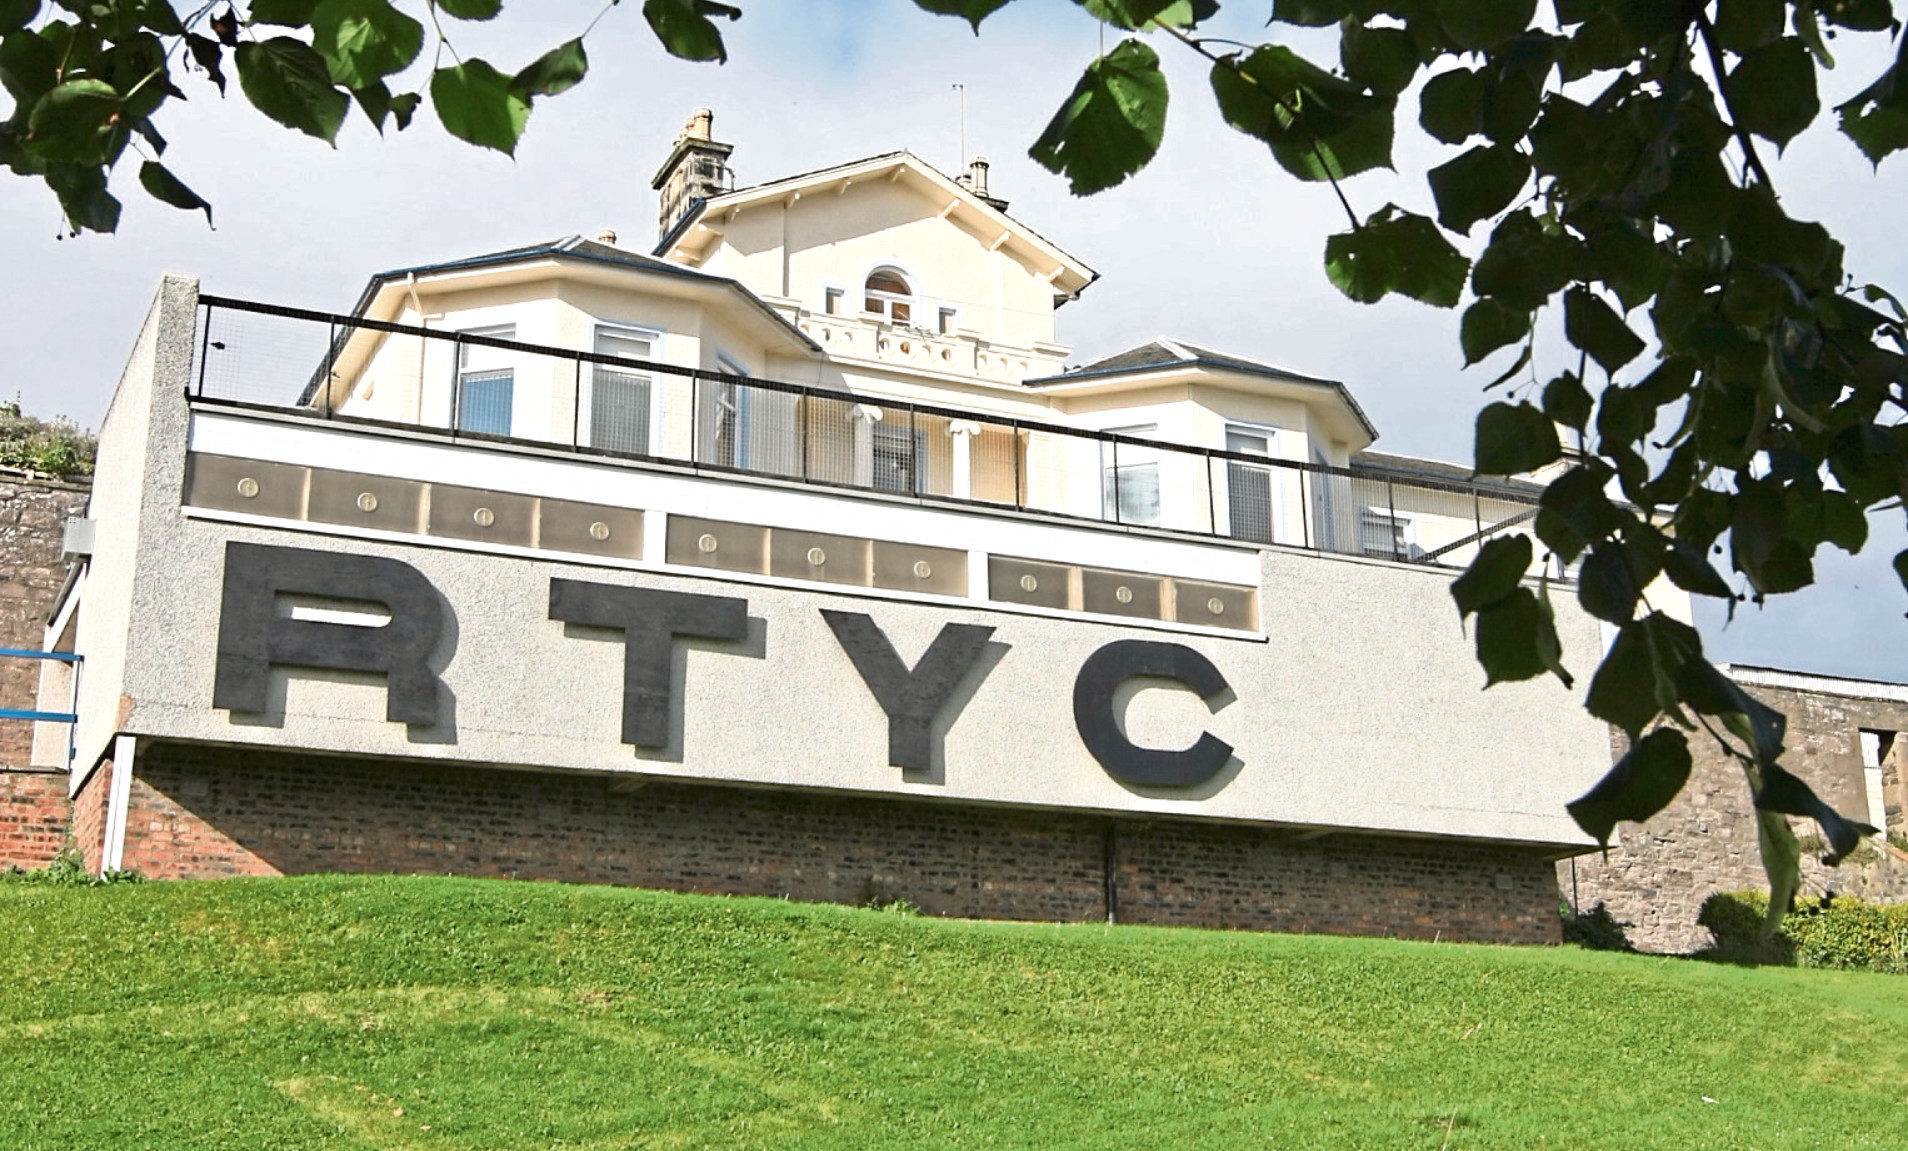 Royal Tay Yacht Club, Broughty Ferry, Dundee